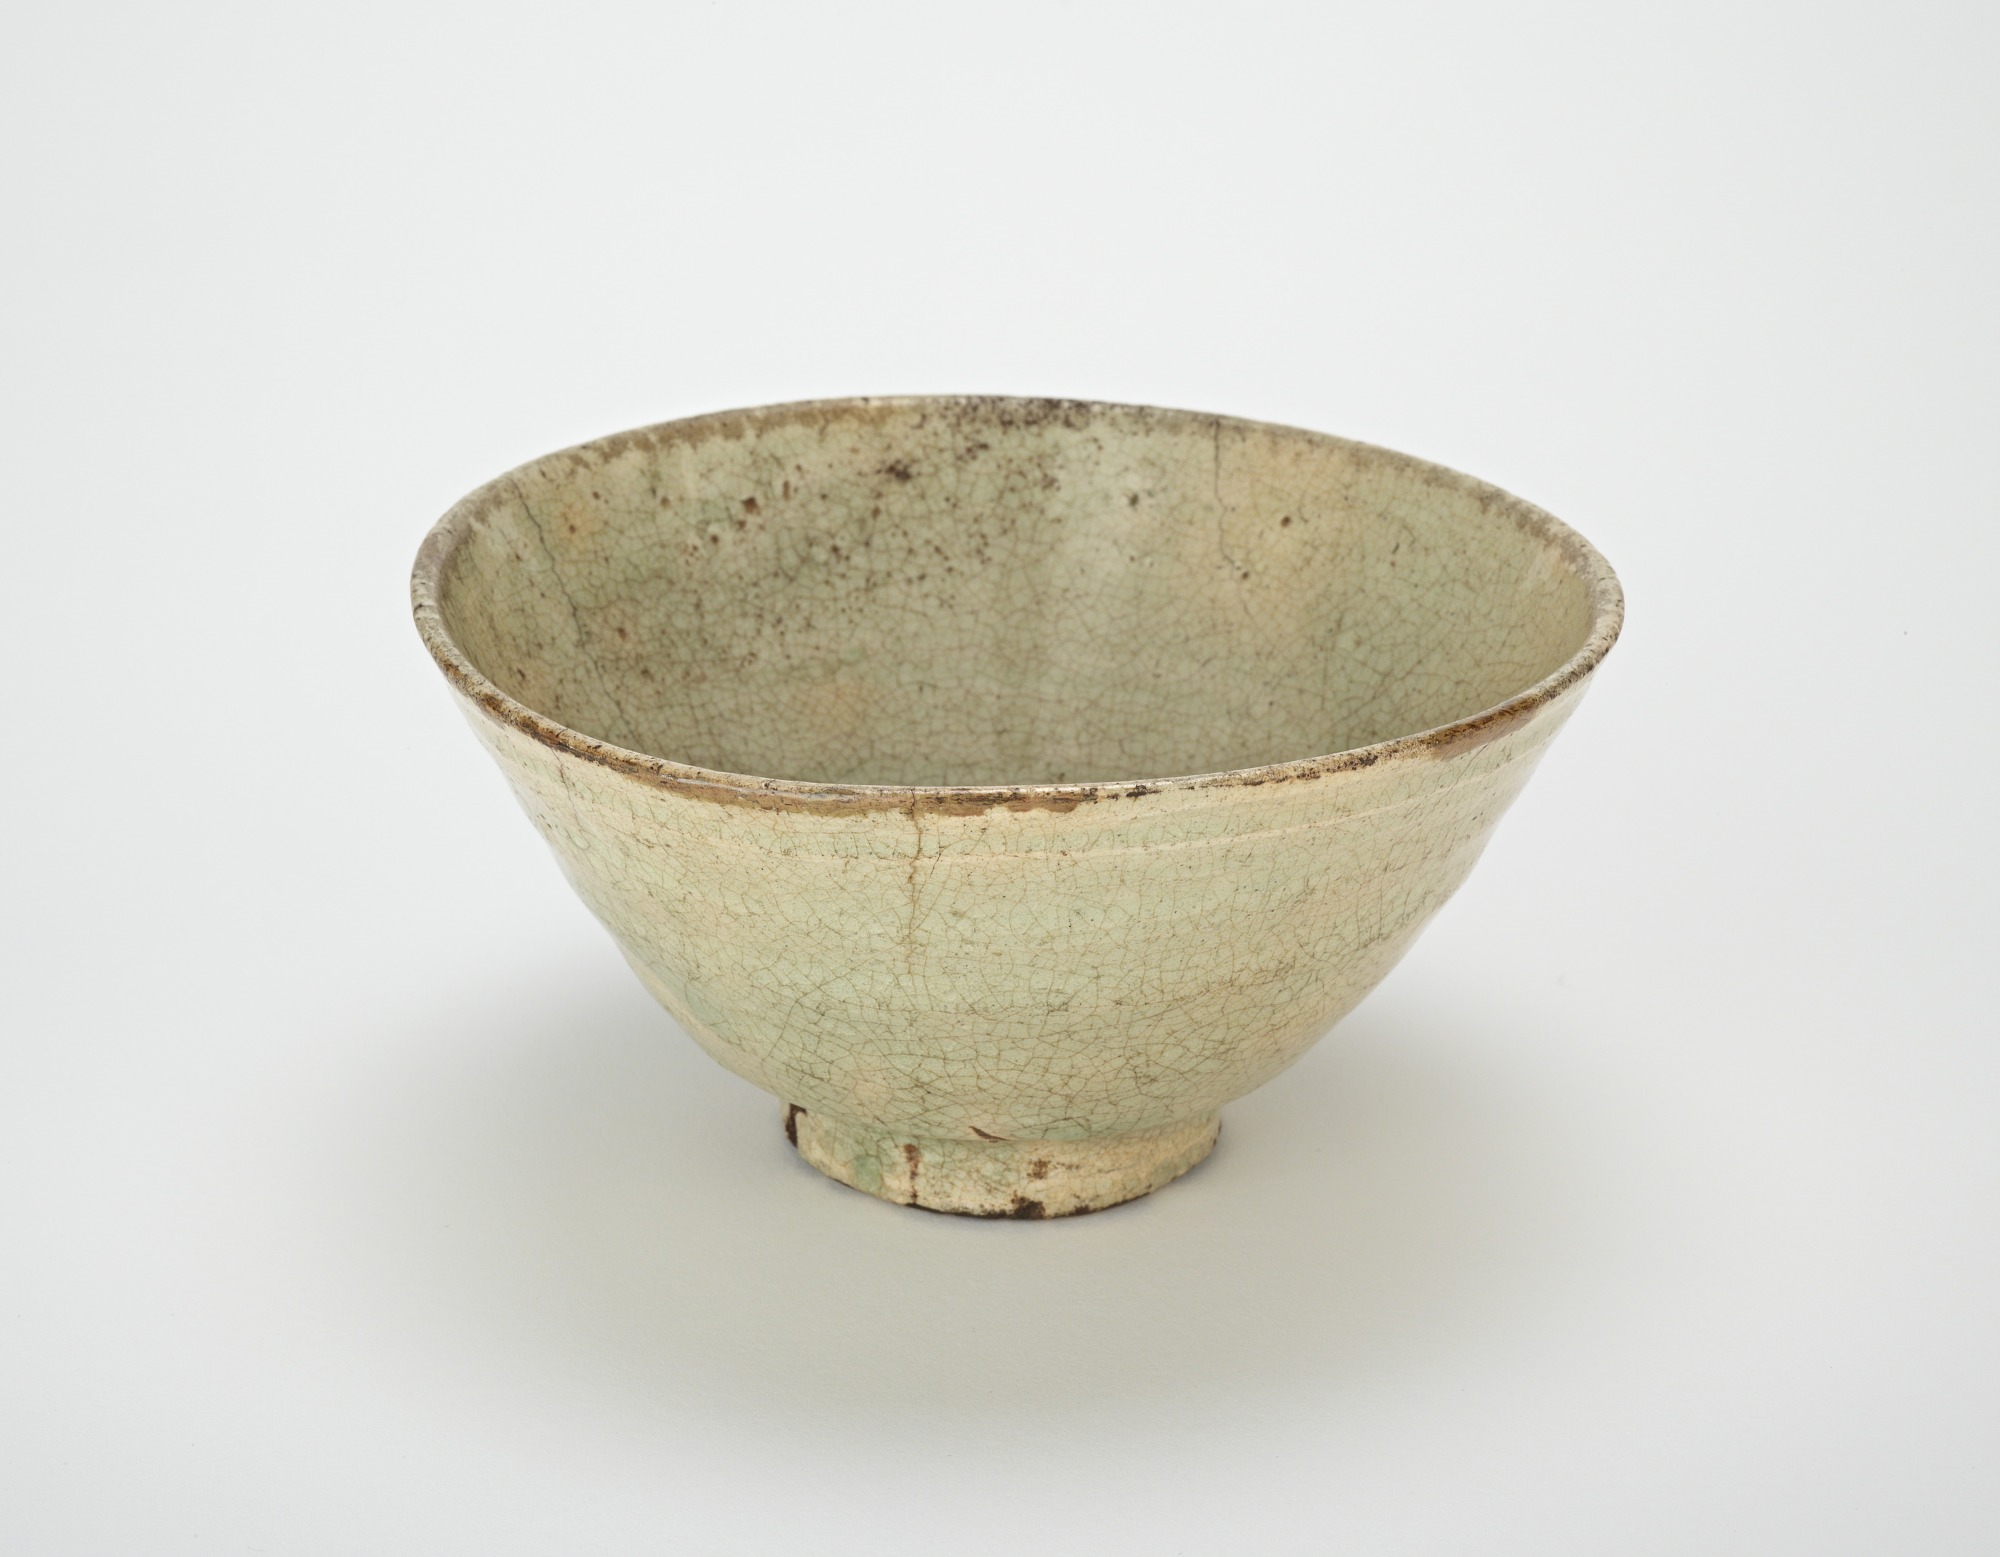 Tea bowl, 3/4 profile